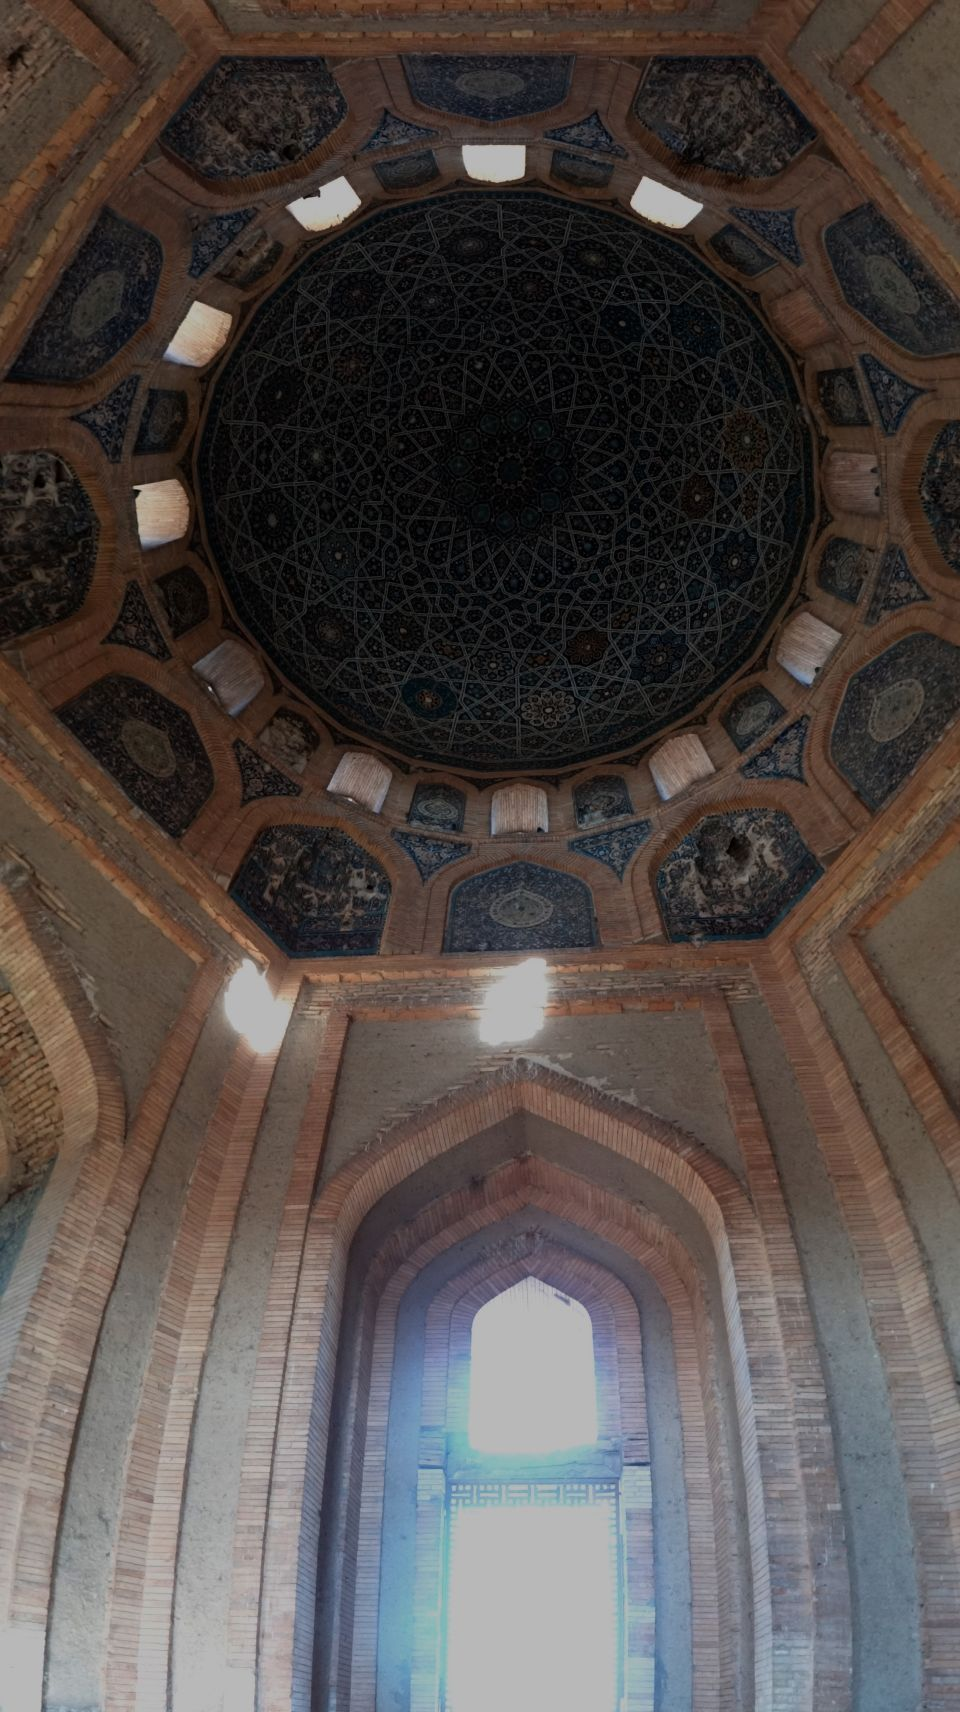 the impressive Turabeg Kahnym mausoleum, it's ceiling like a calendar